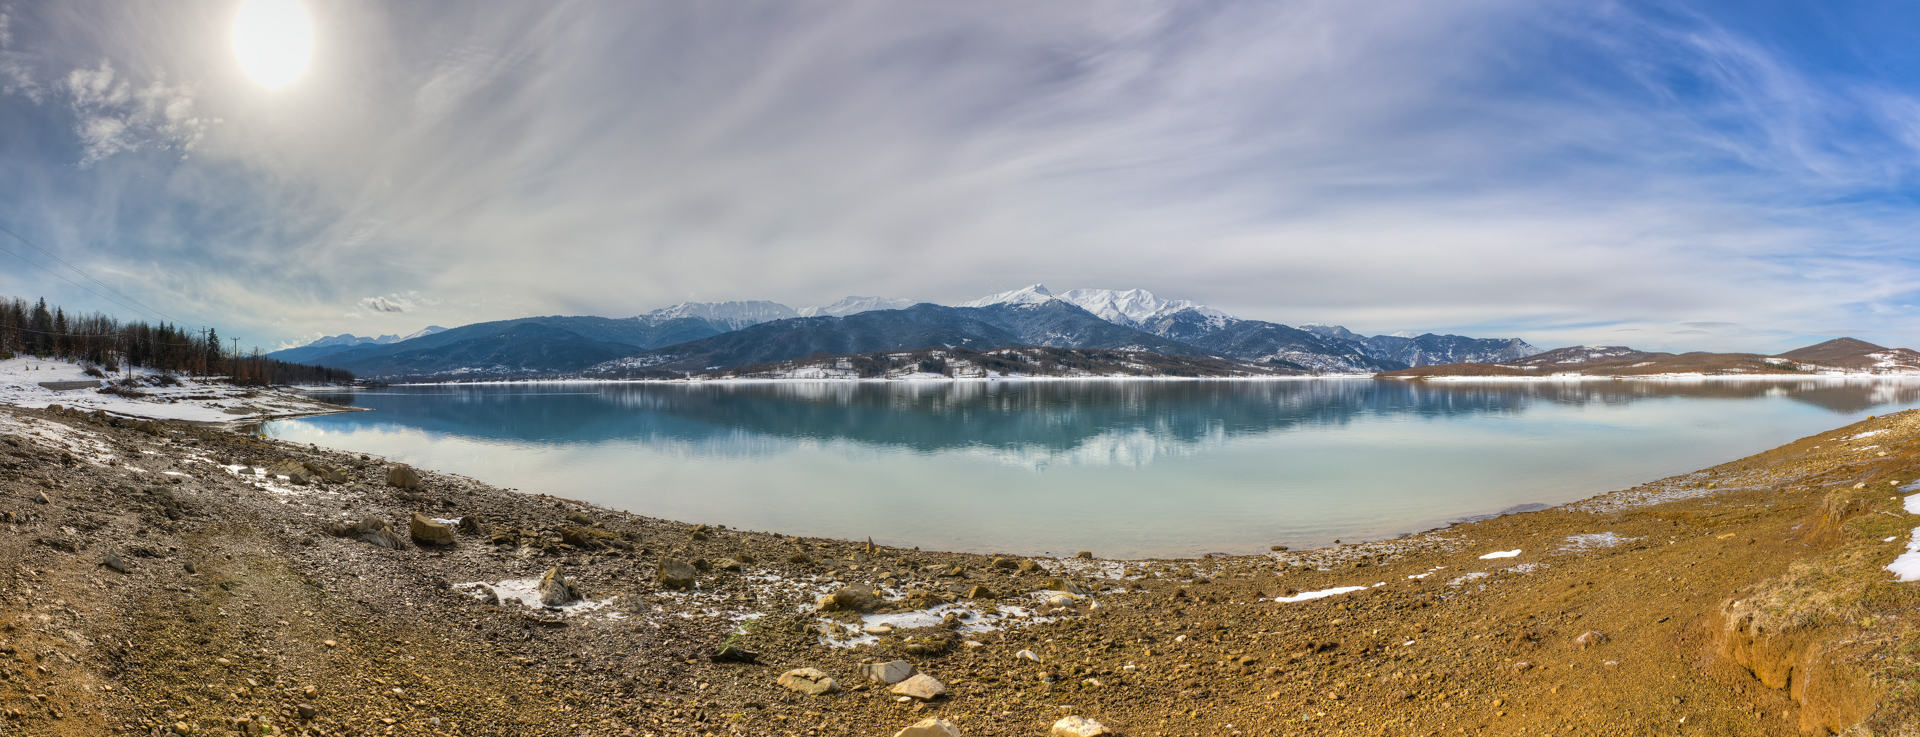 Lake Plastiras, panorama, Thessaly, Greece